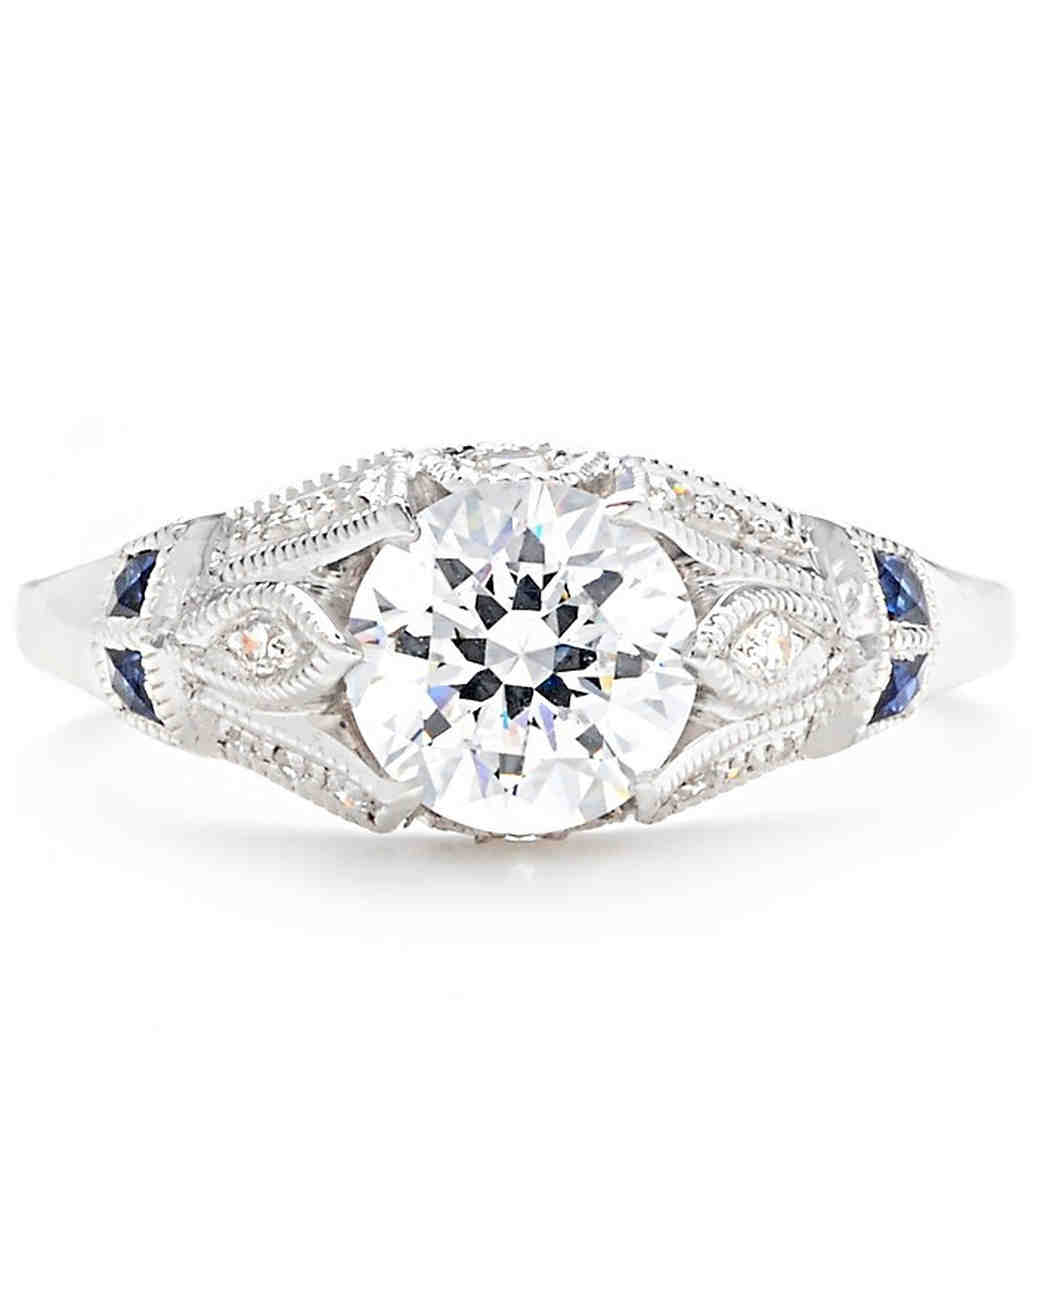 e rings engagement platinum old sold index fine solitiare drury diamond cut antique diamonds exceptional